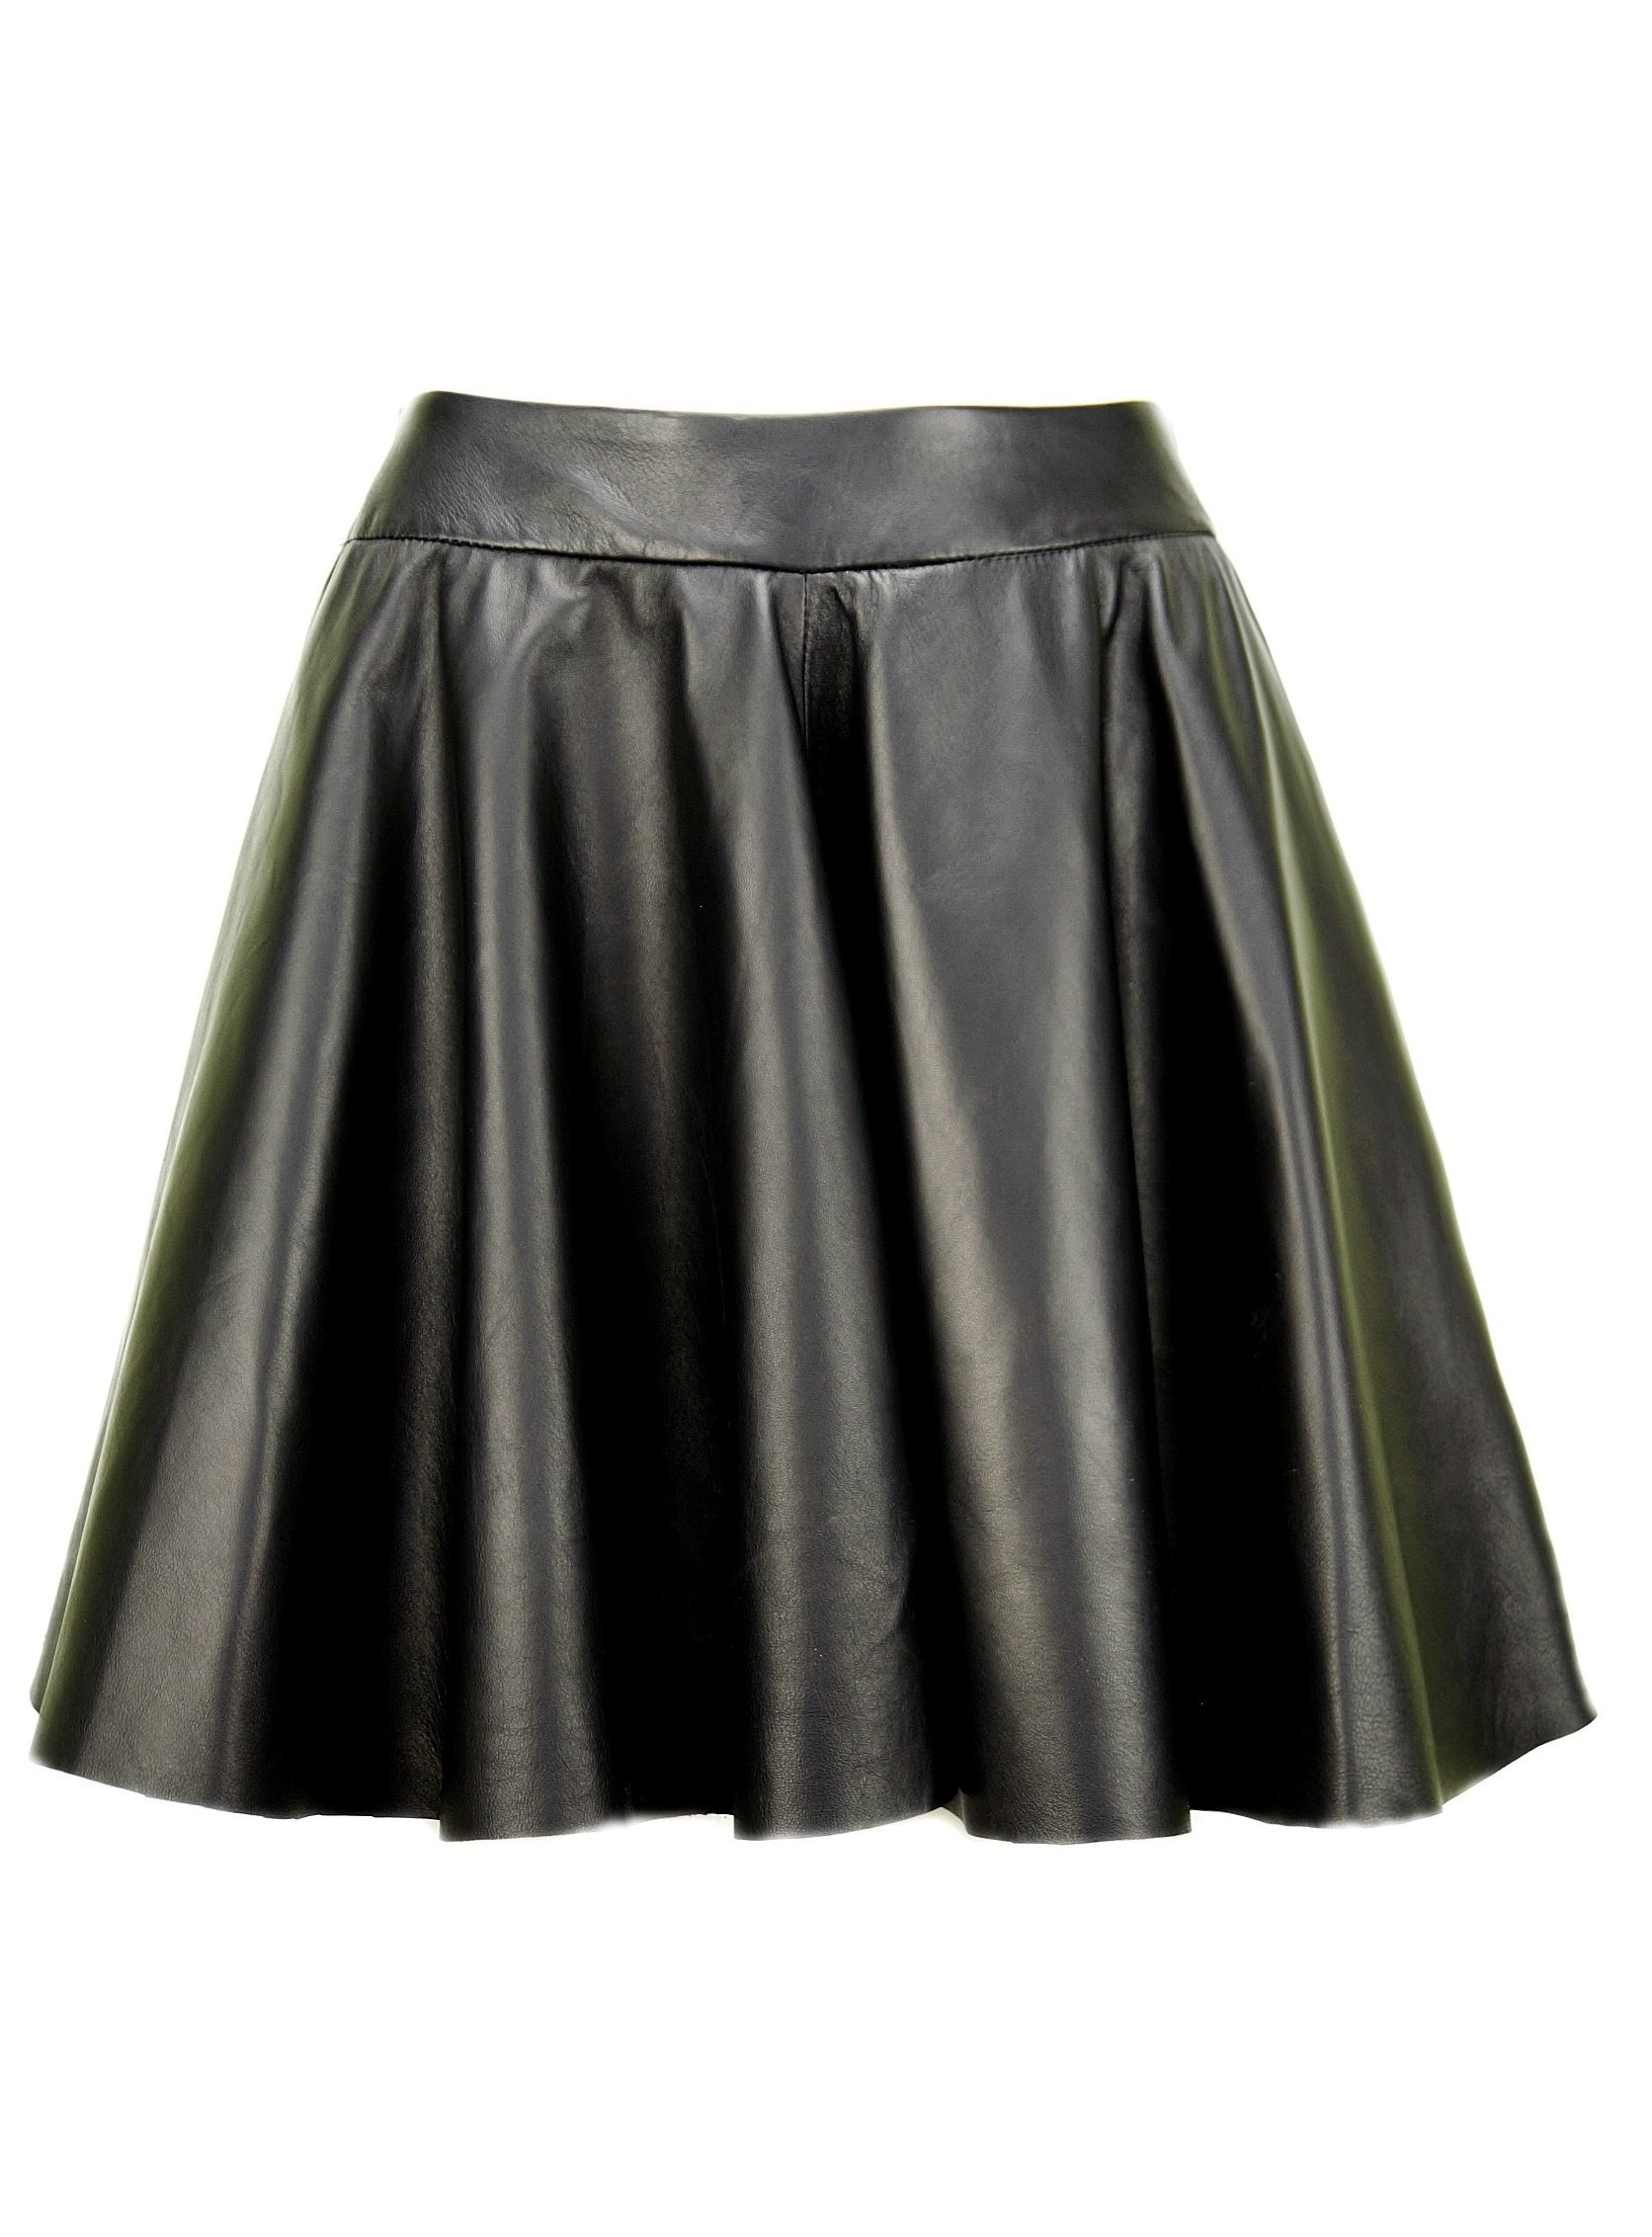 Women's Leather skirt, black circle skirt KSP-0002 (M, black)